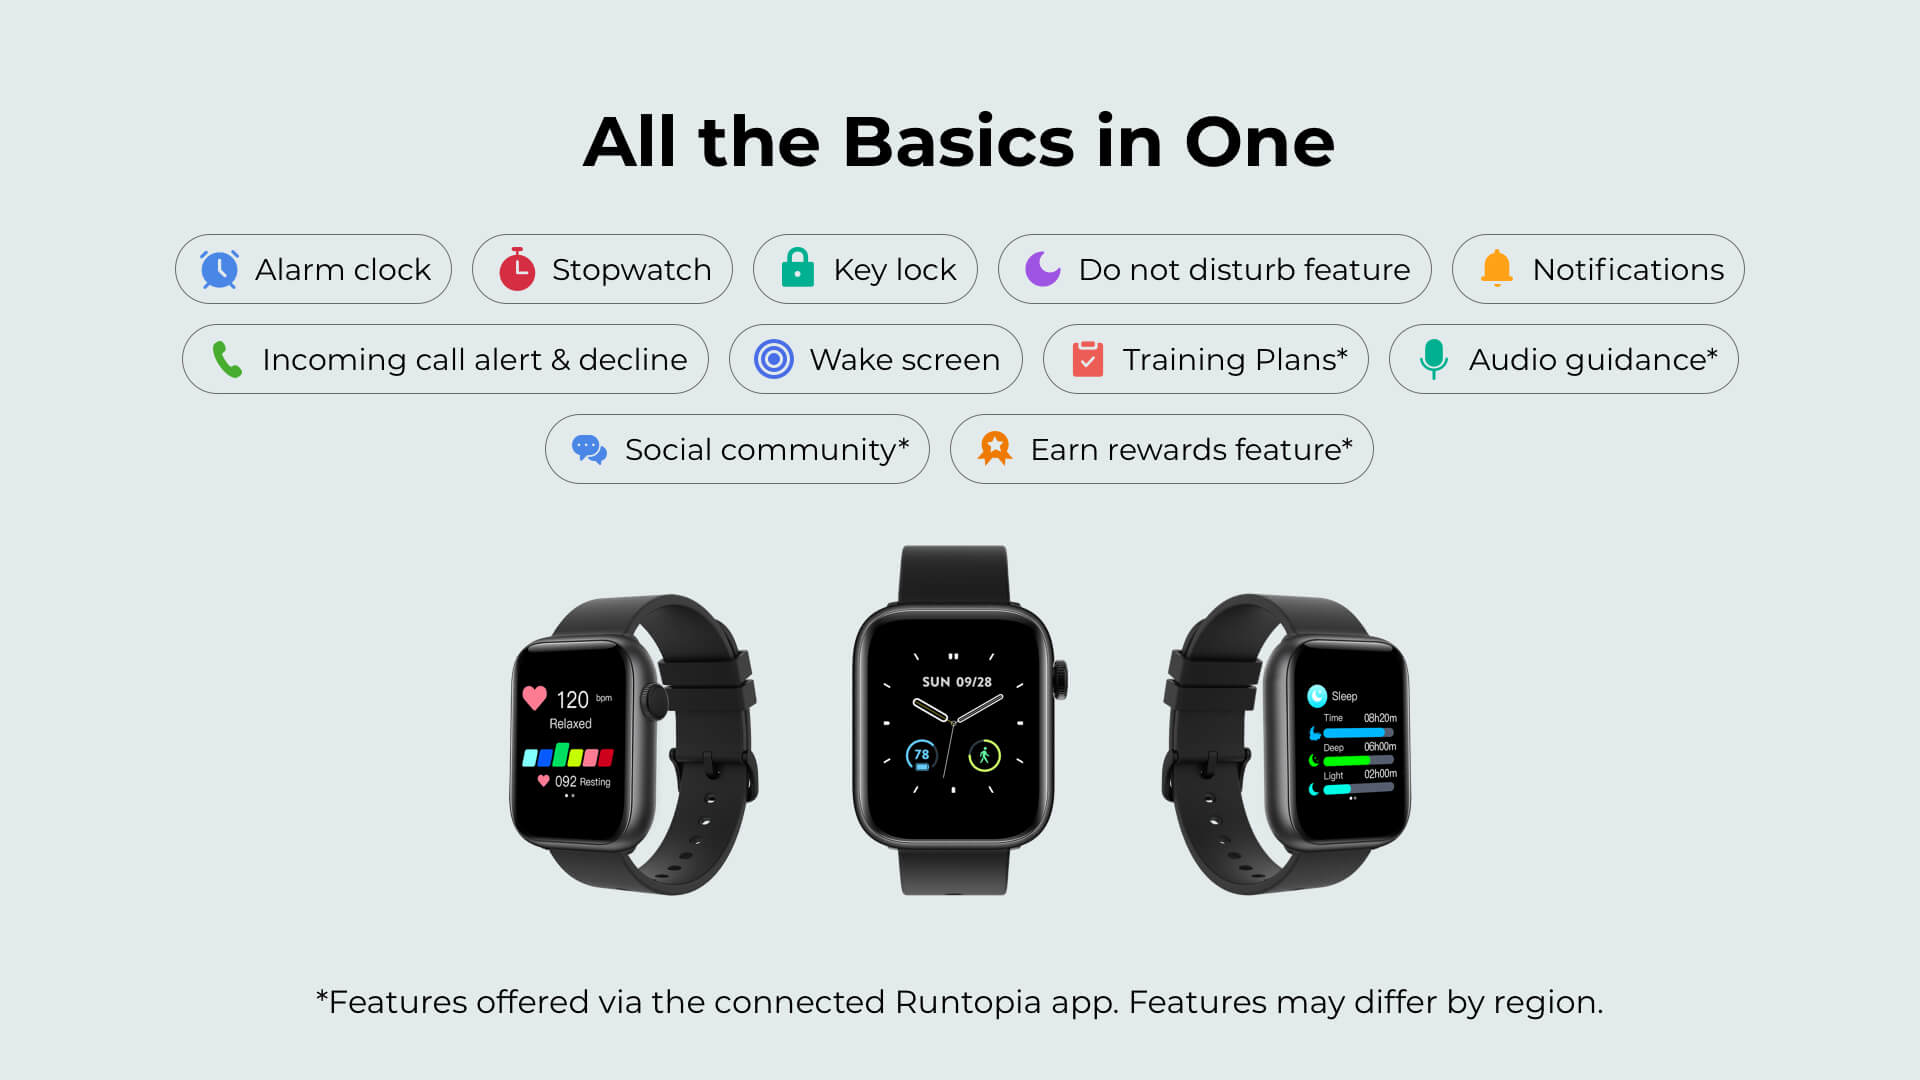 Runtopia F3 Fitness Smartwatch other essential tools and features